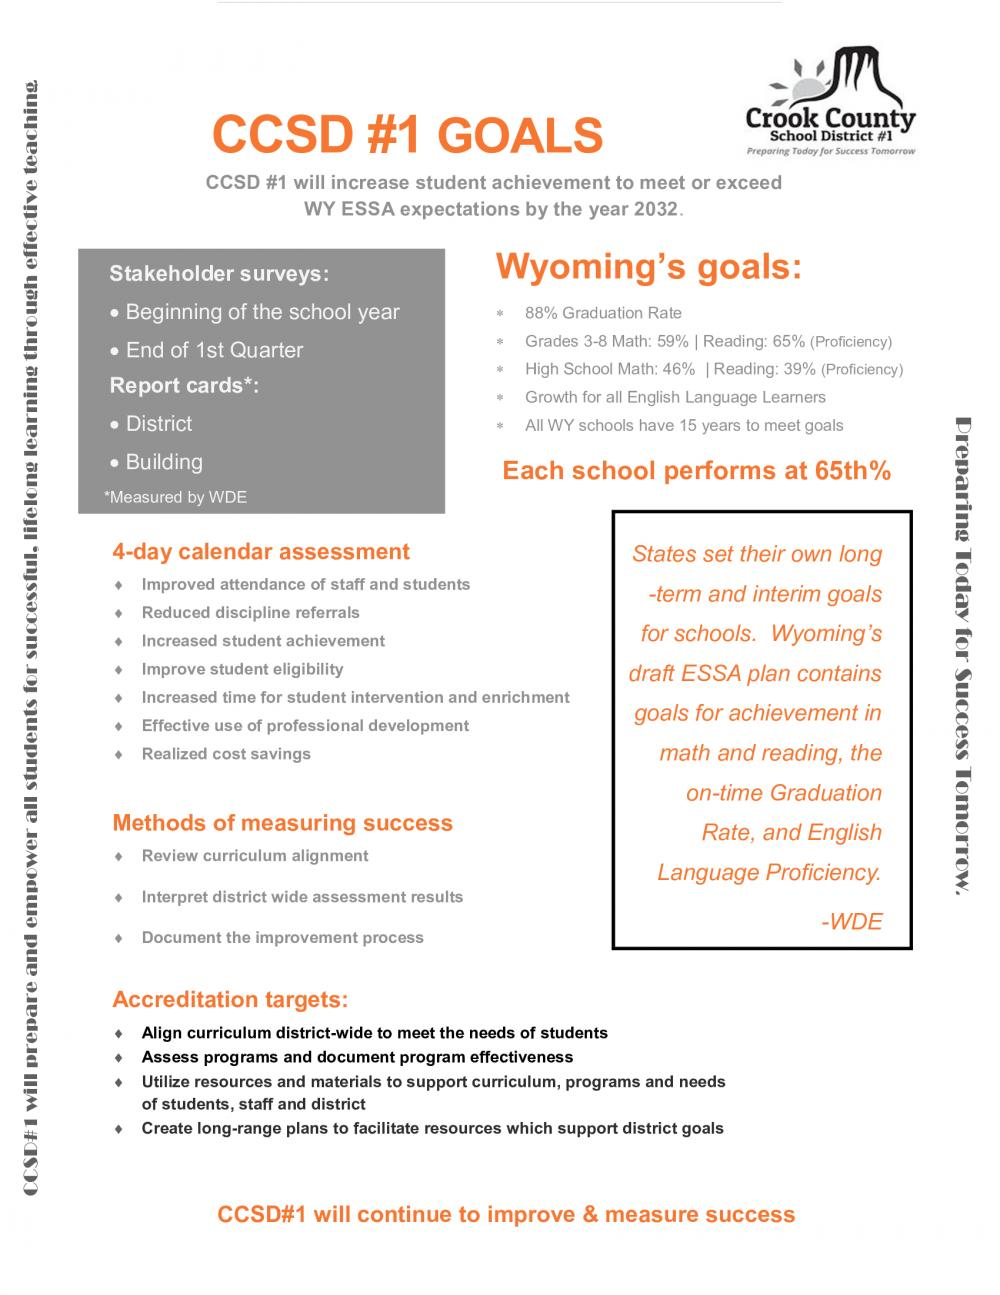 2018 goals concerning Every Student Succeeds Act